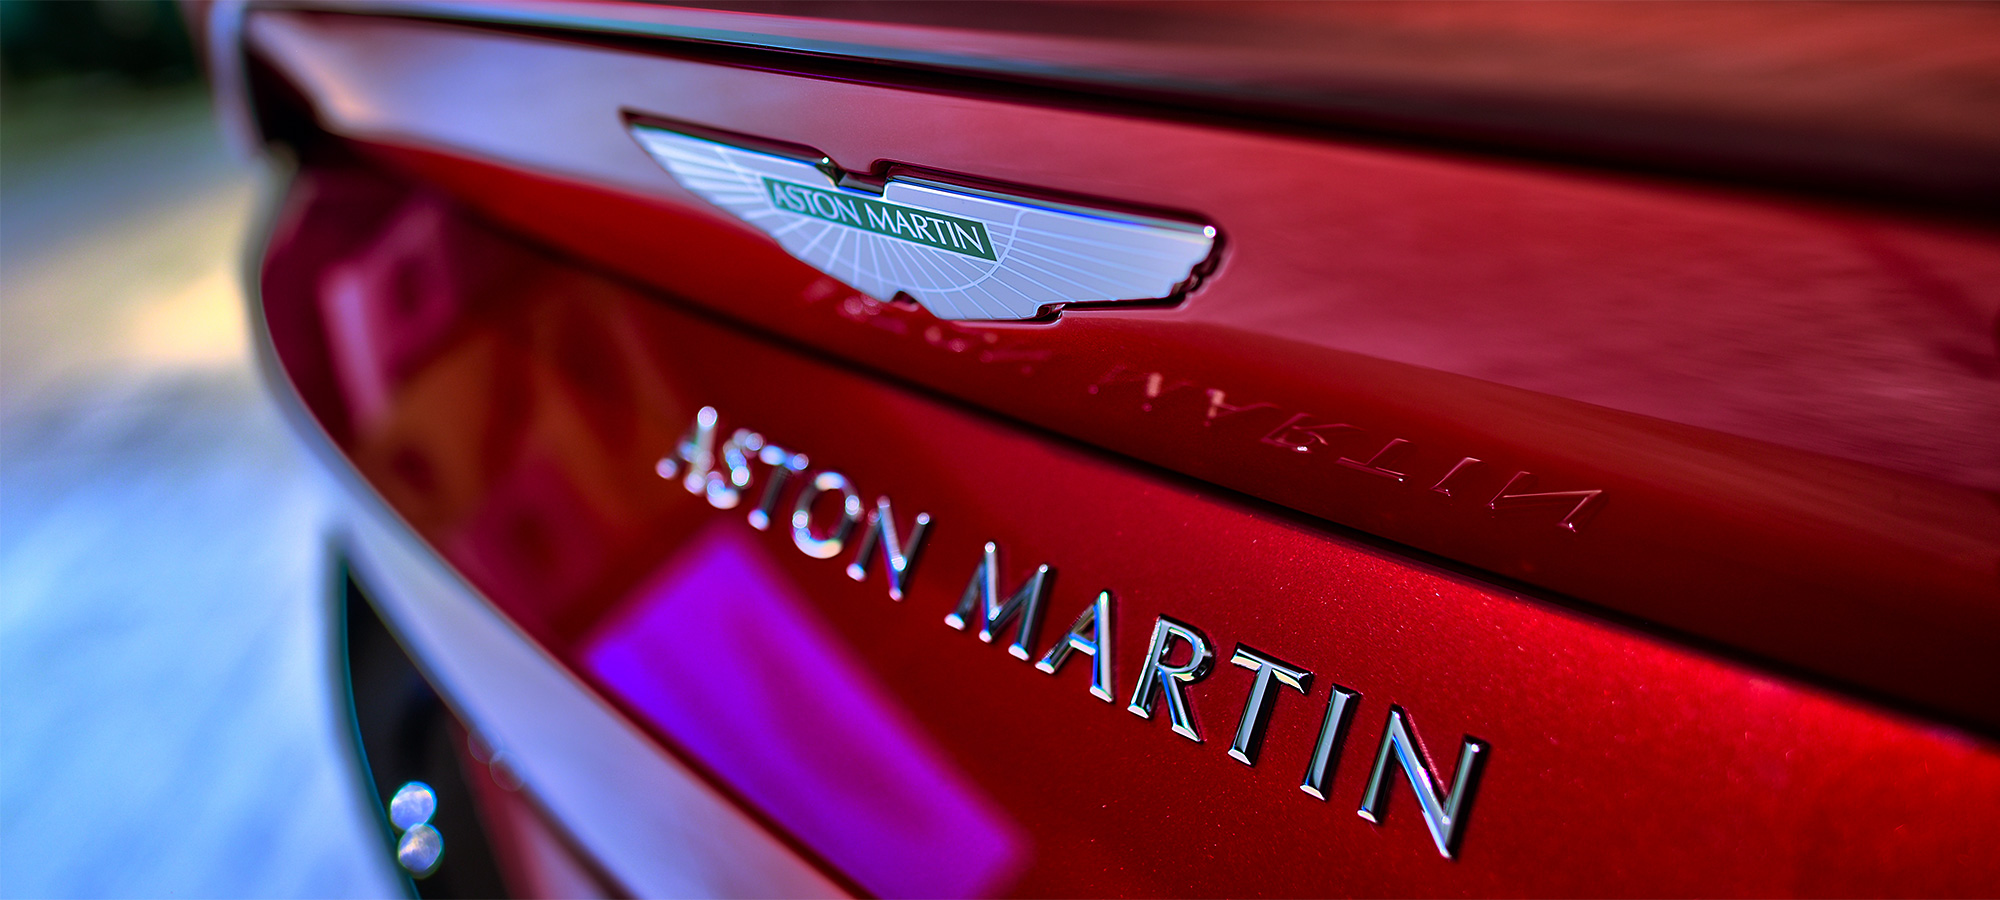 Aston Martin for paint protection film